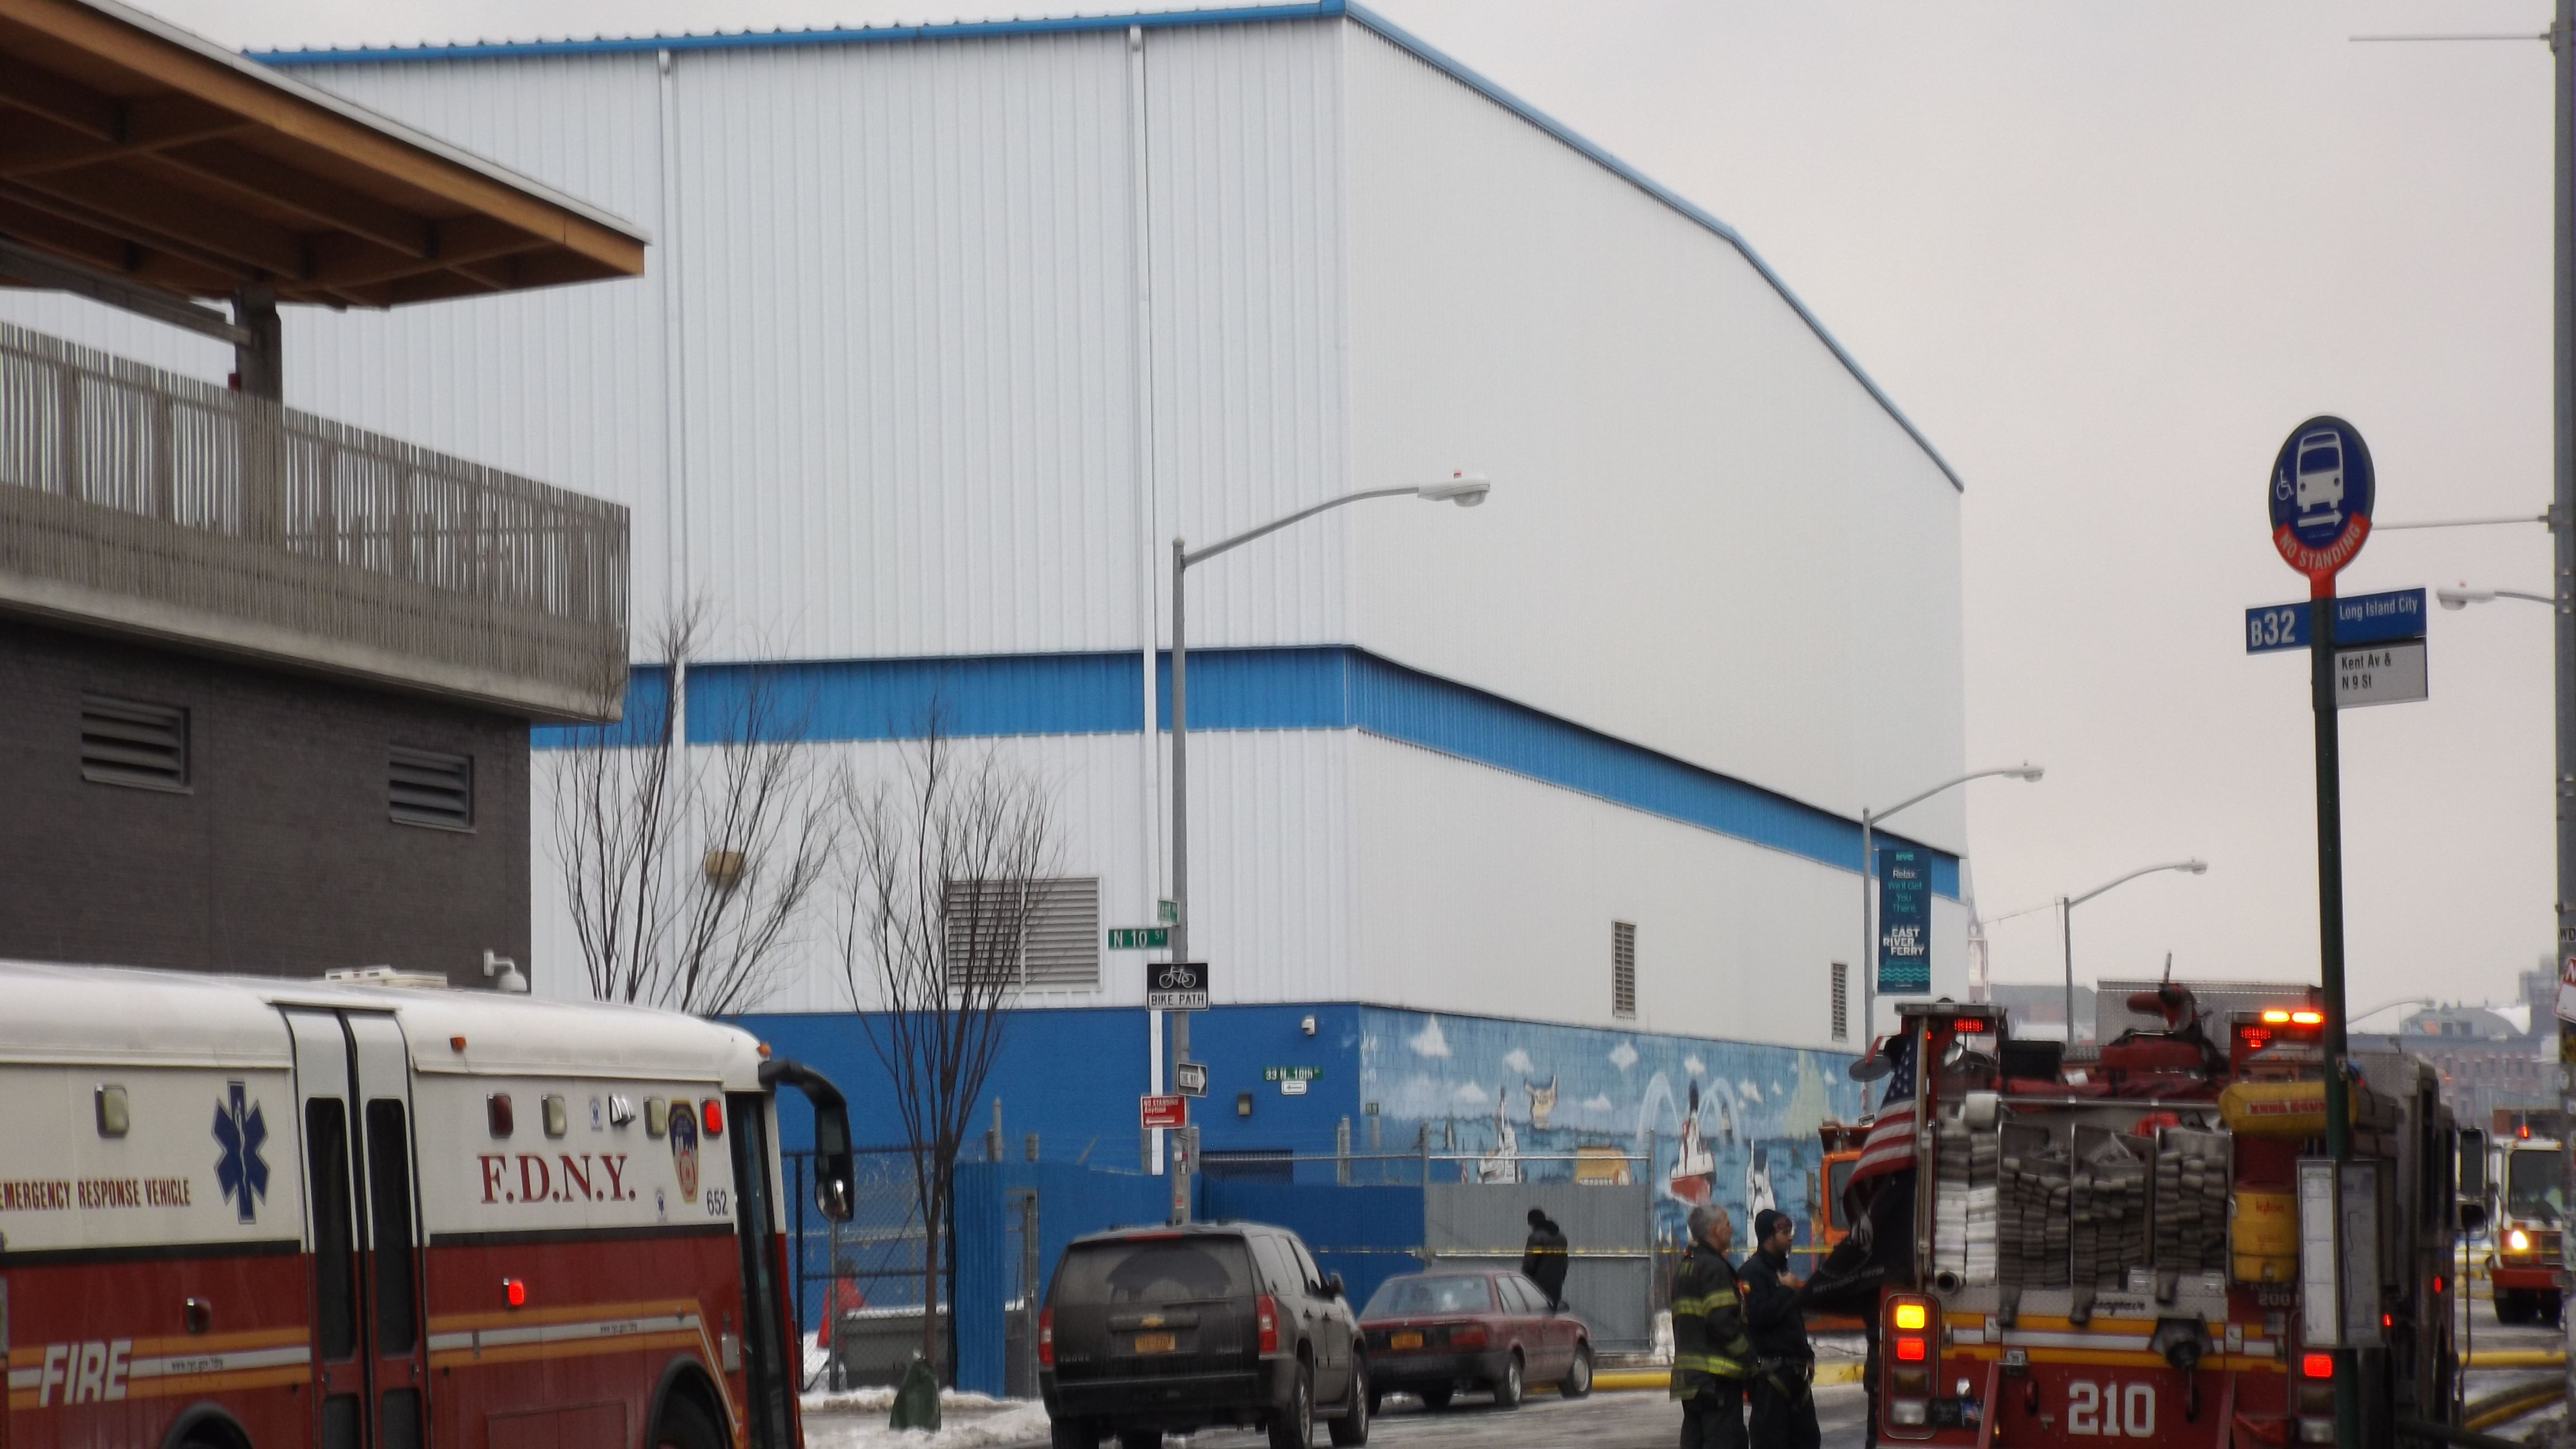 File:FDNY Fire Engine fights the Brooklyn Paper Warehouse Fire